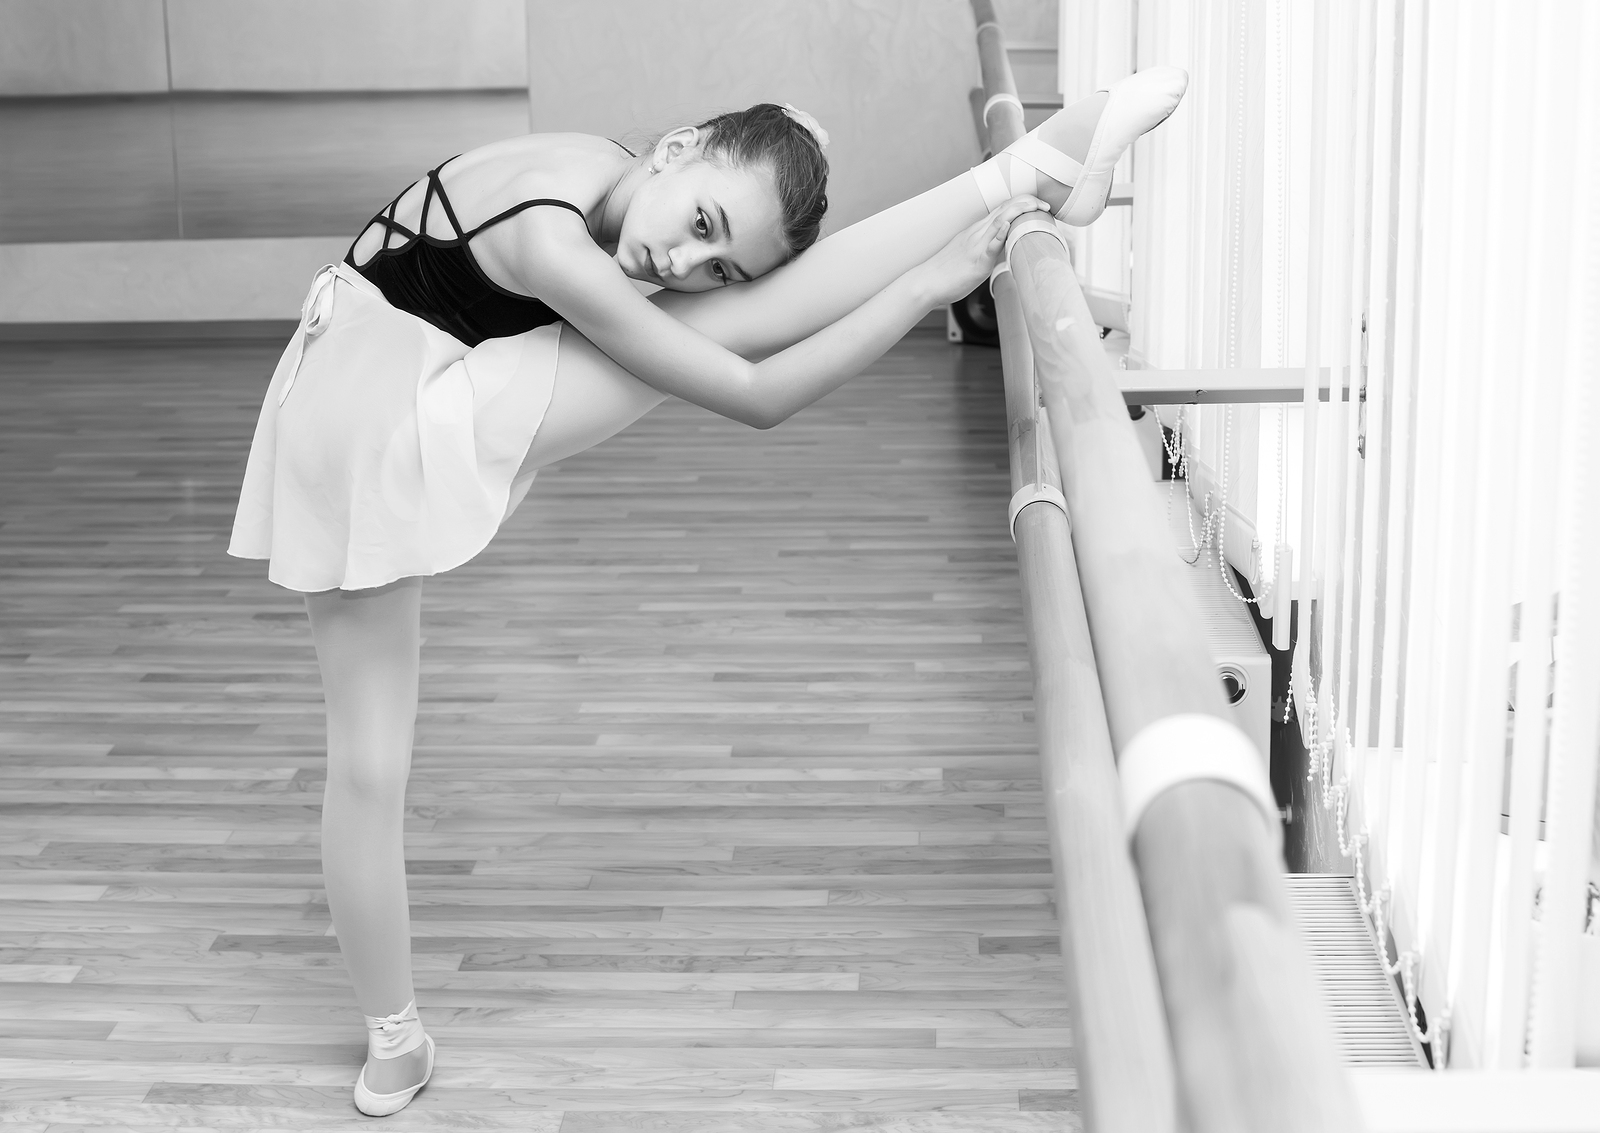 scoliosis and ballet